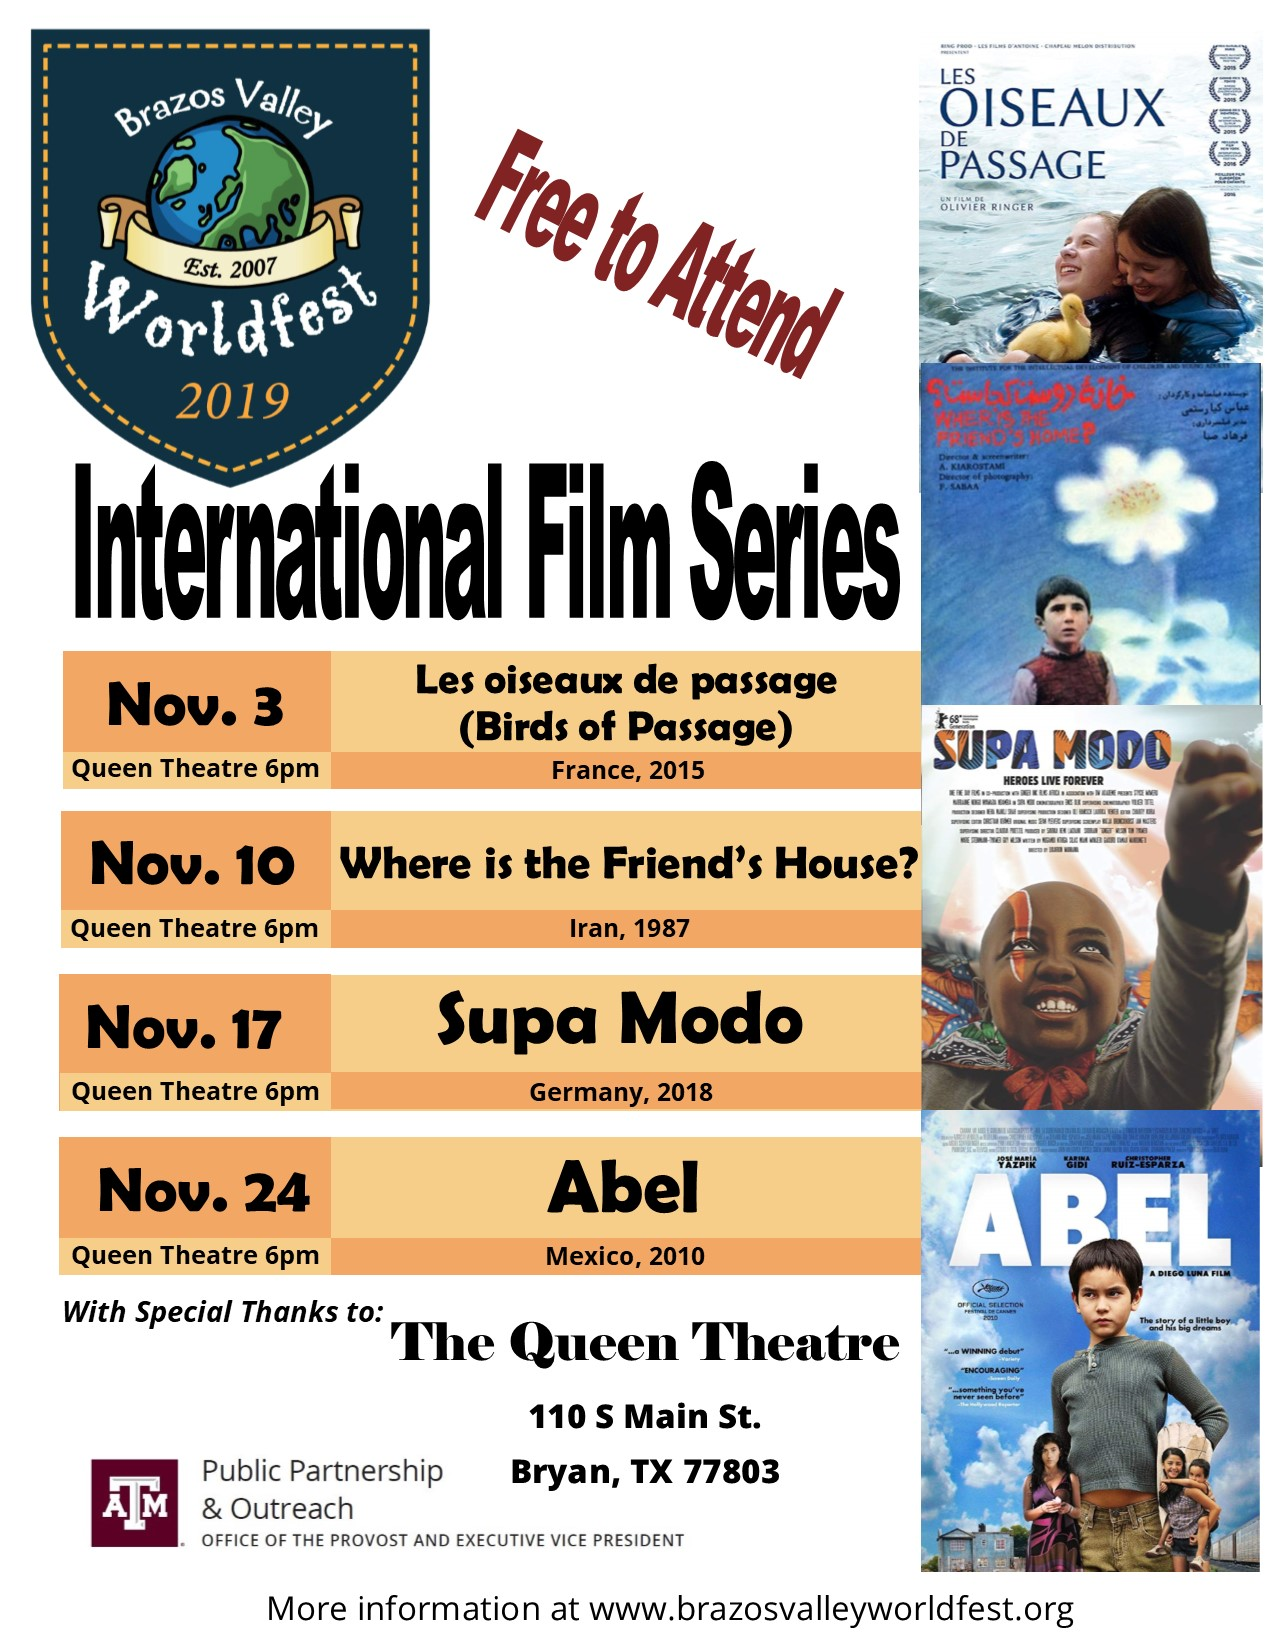 International Film Series flyer, with schedule of films